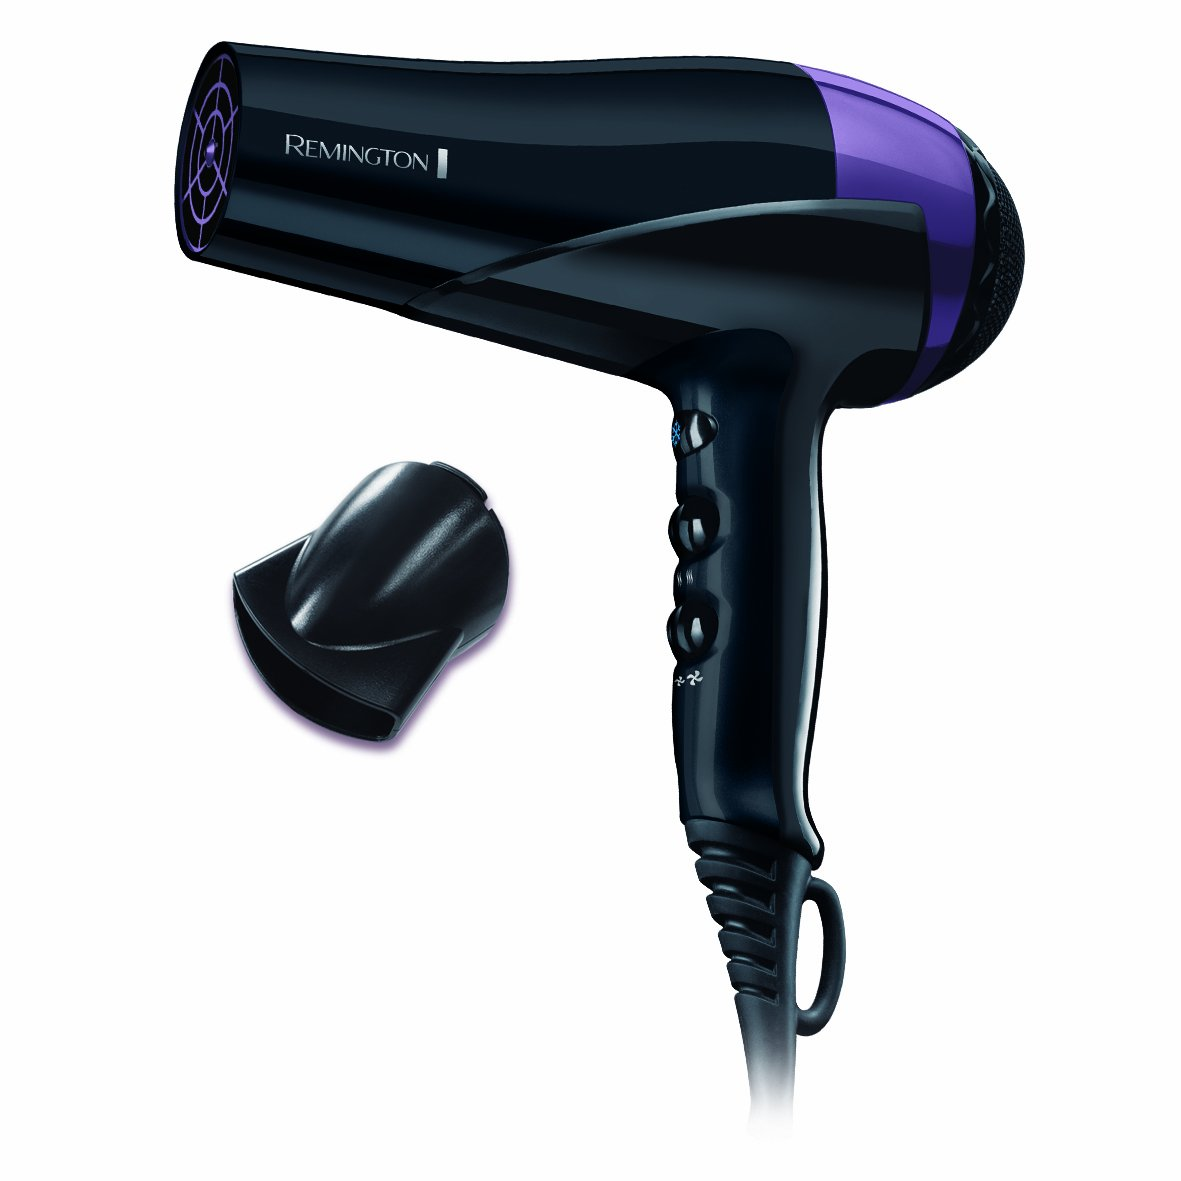 Womens professional ionic conditioning colour protect hair dryer d6090 - Remington D6090 Colour Protect Hair Dryer Amazon Co Uk Health Personal Care